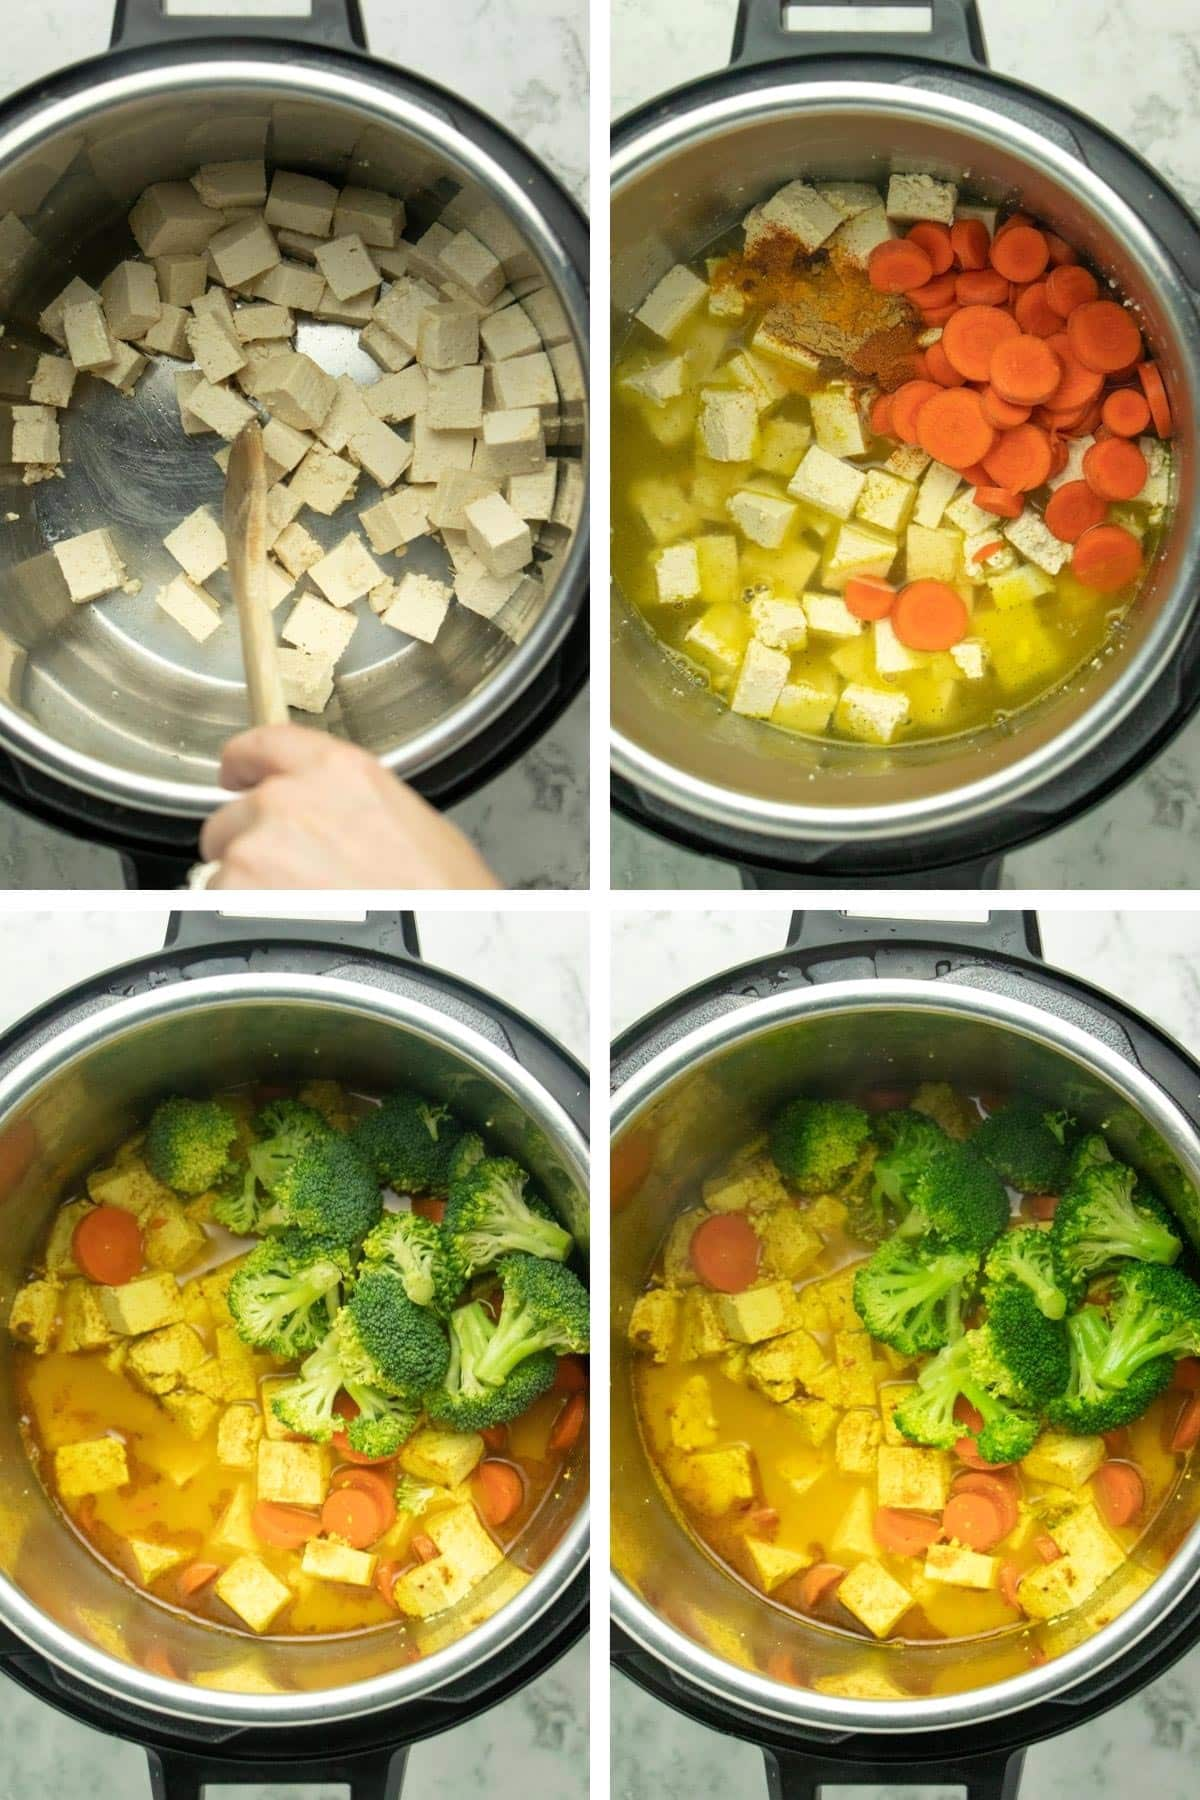 image collage showing the the ingredients being added to the Instant Pot  in order